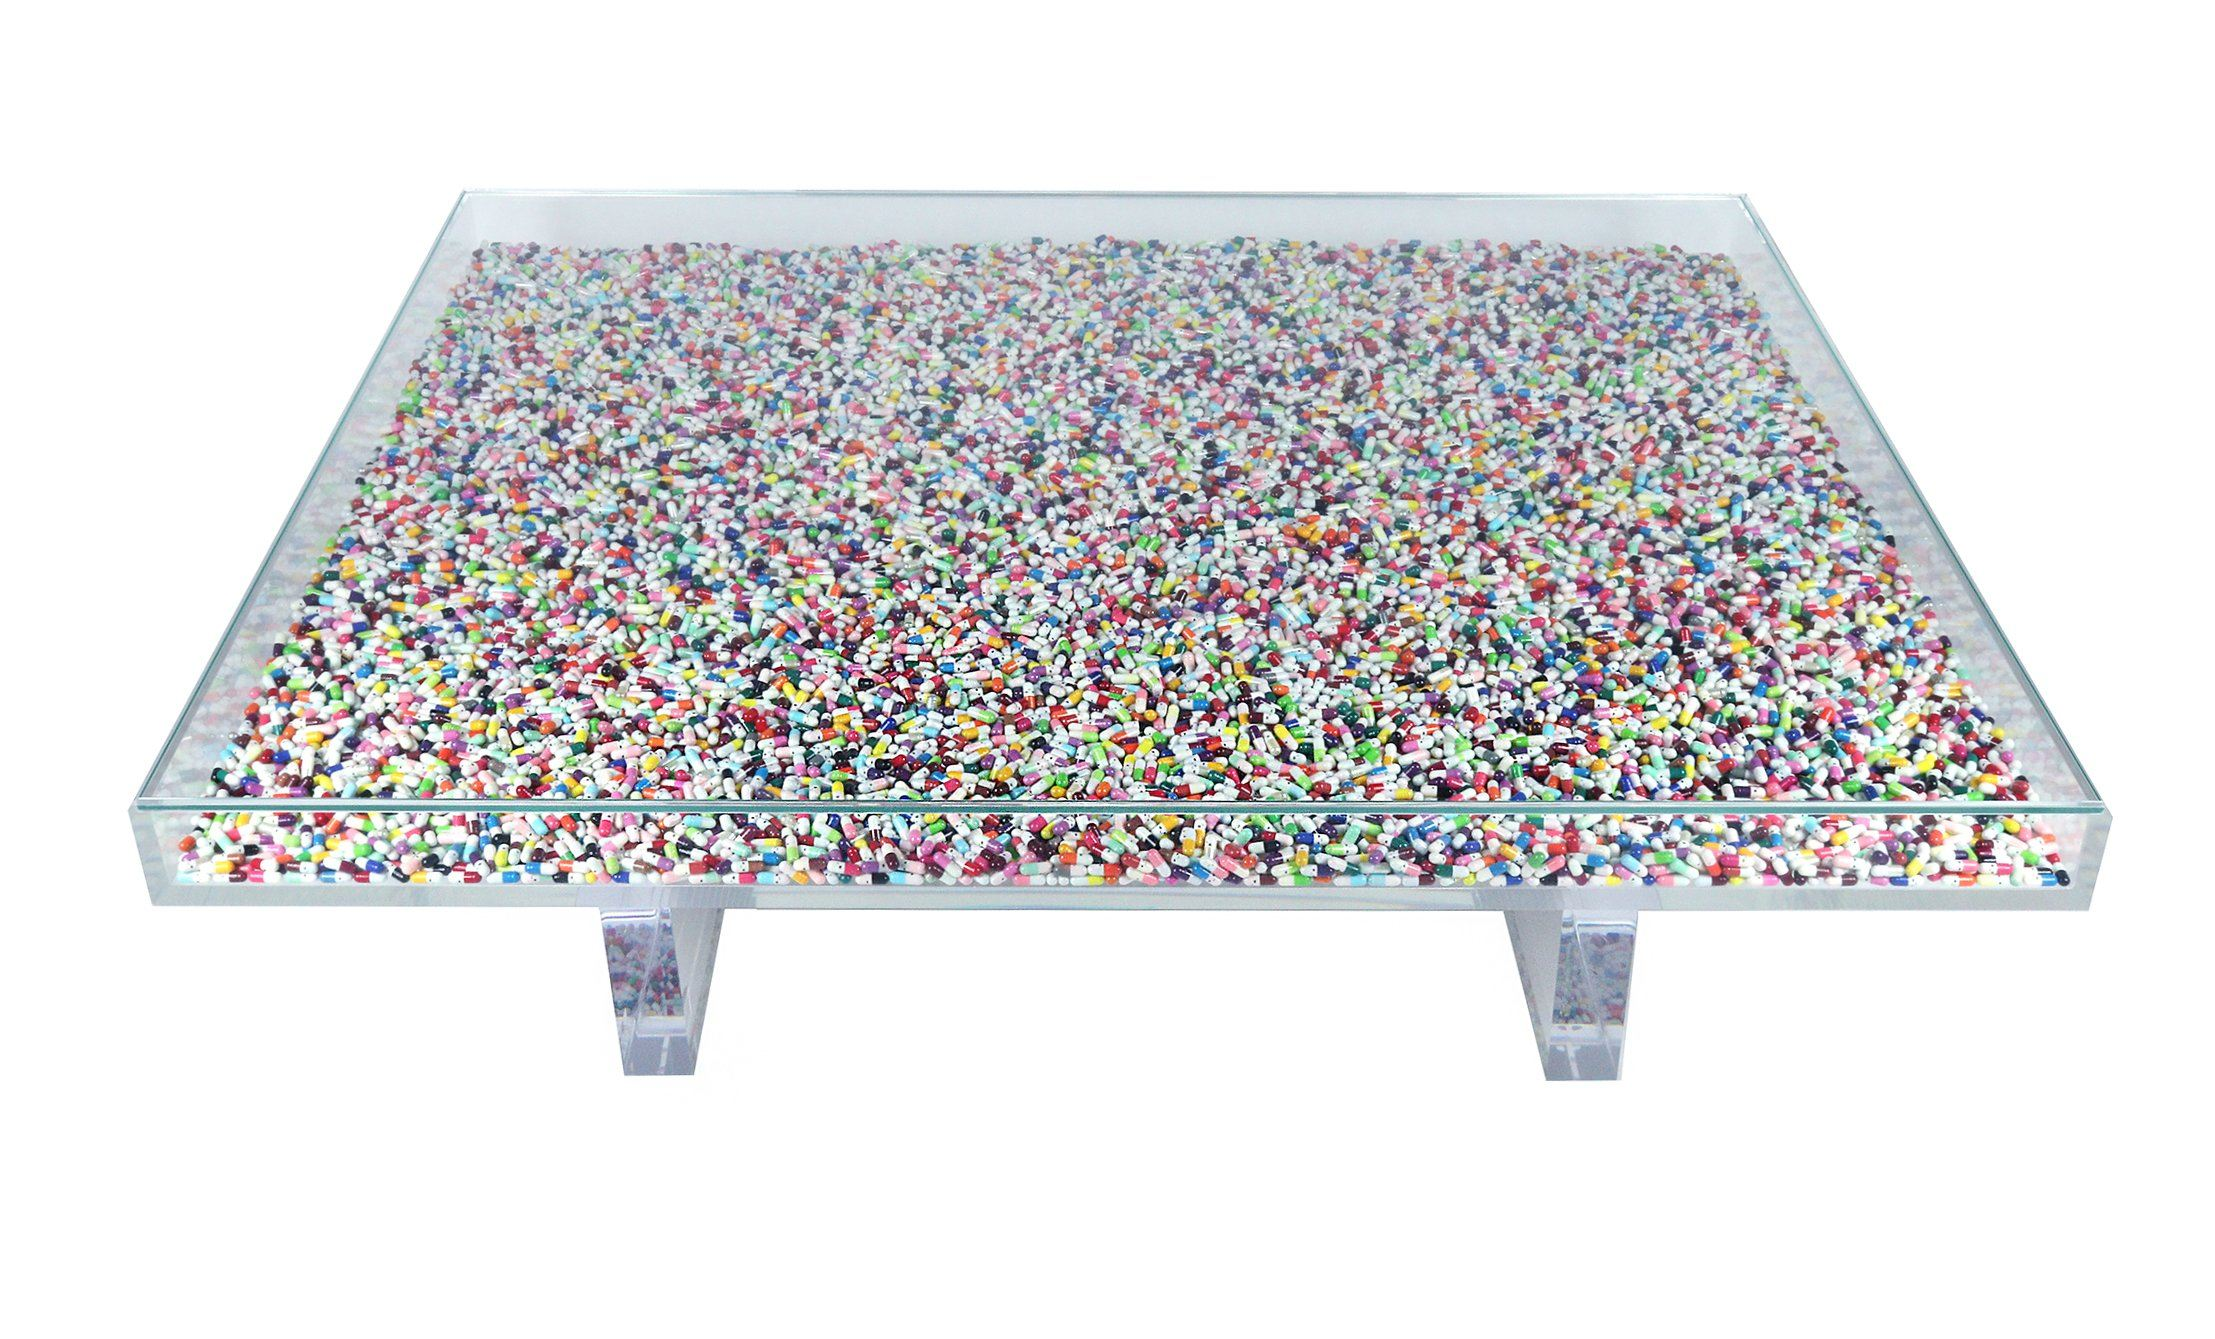 'The Happy Pill Table' by Dio Davies - A Modern Grand Tour